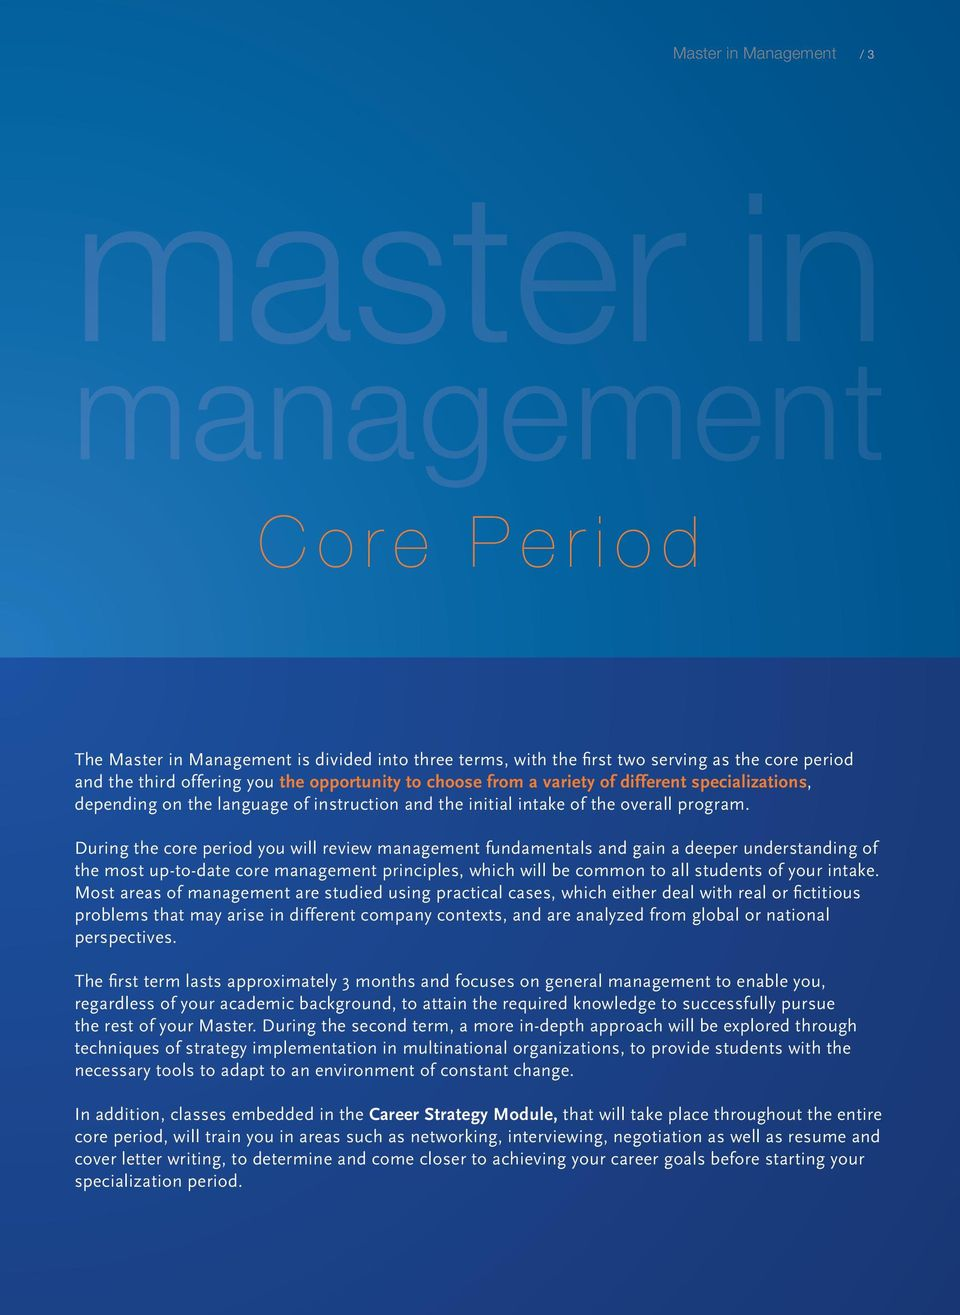 During the core period you will review management fundamentals and gain a deeper understanding of the most up-to-date core management principles, which will be common to all students of your intake.